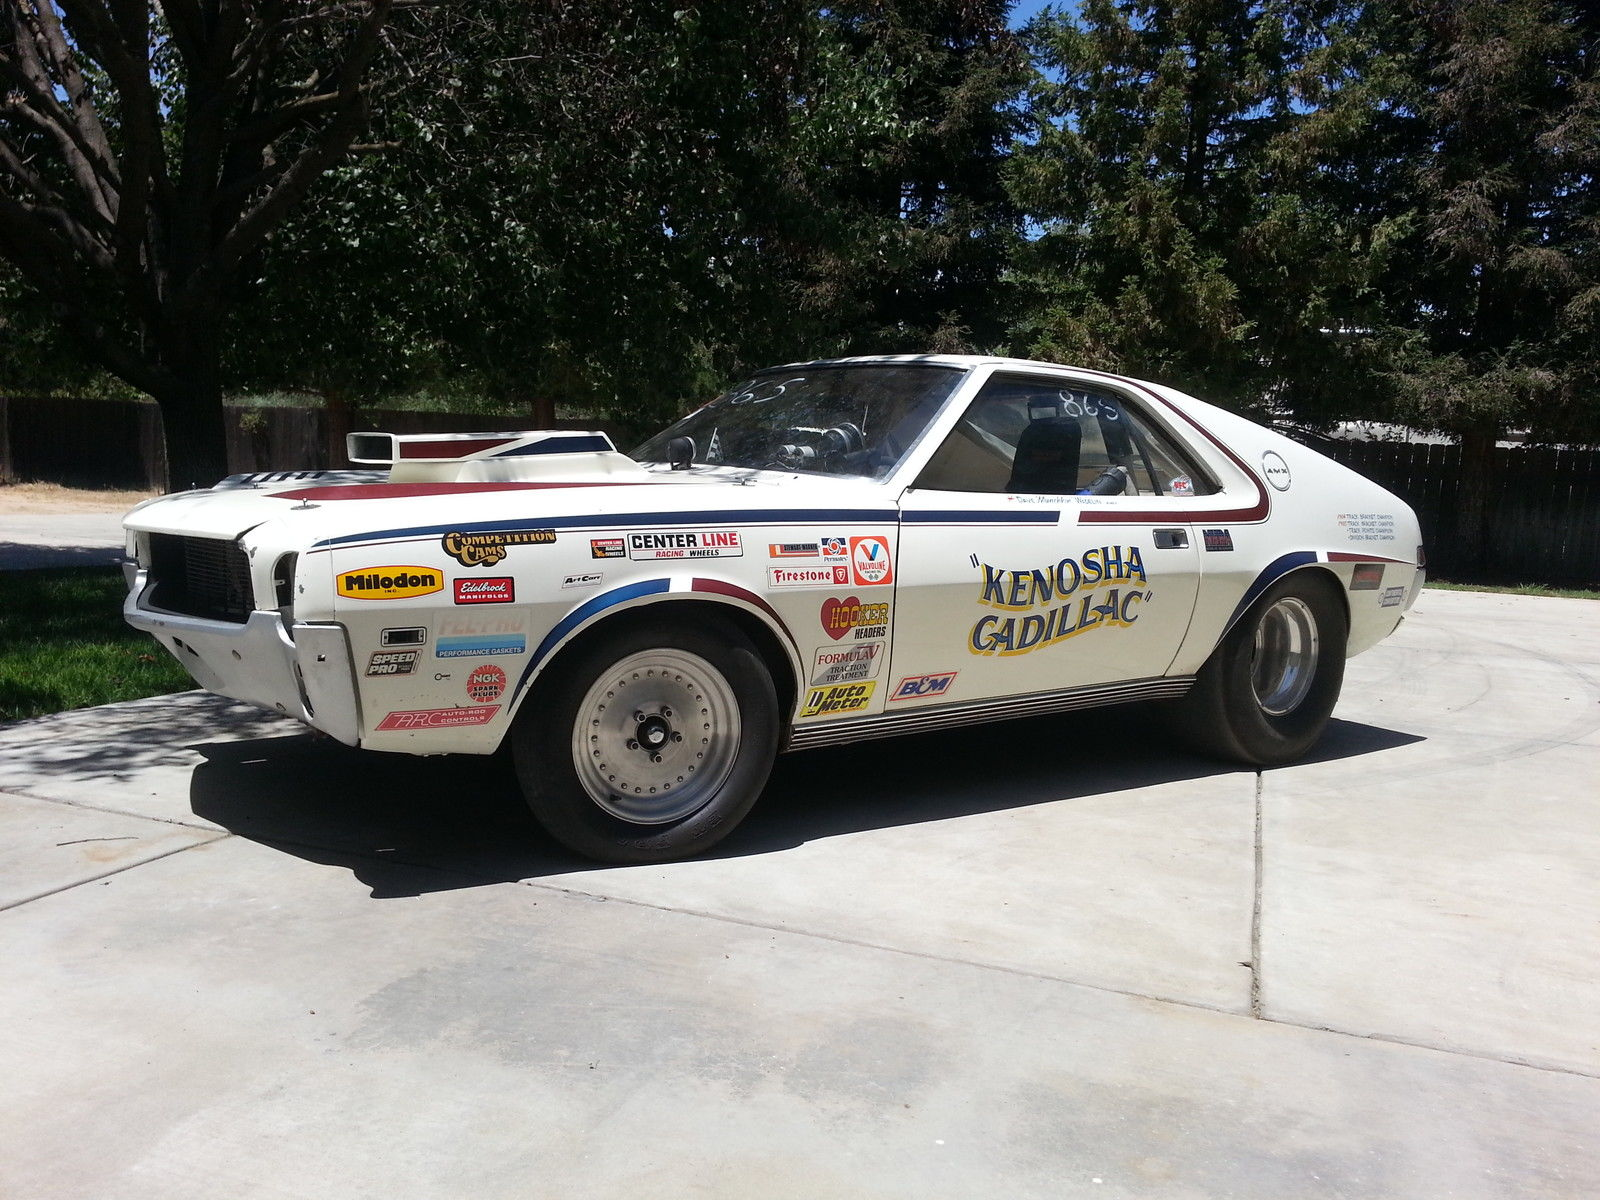 1968 AMC AMX Drag Racer Put Up For Sale on eBAy, Could be Yours for ...